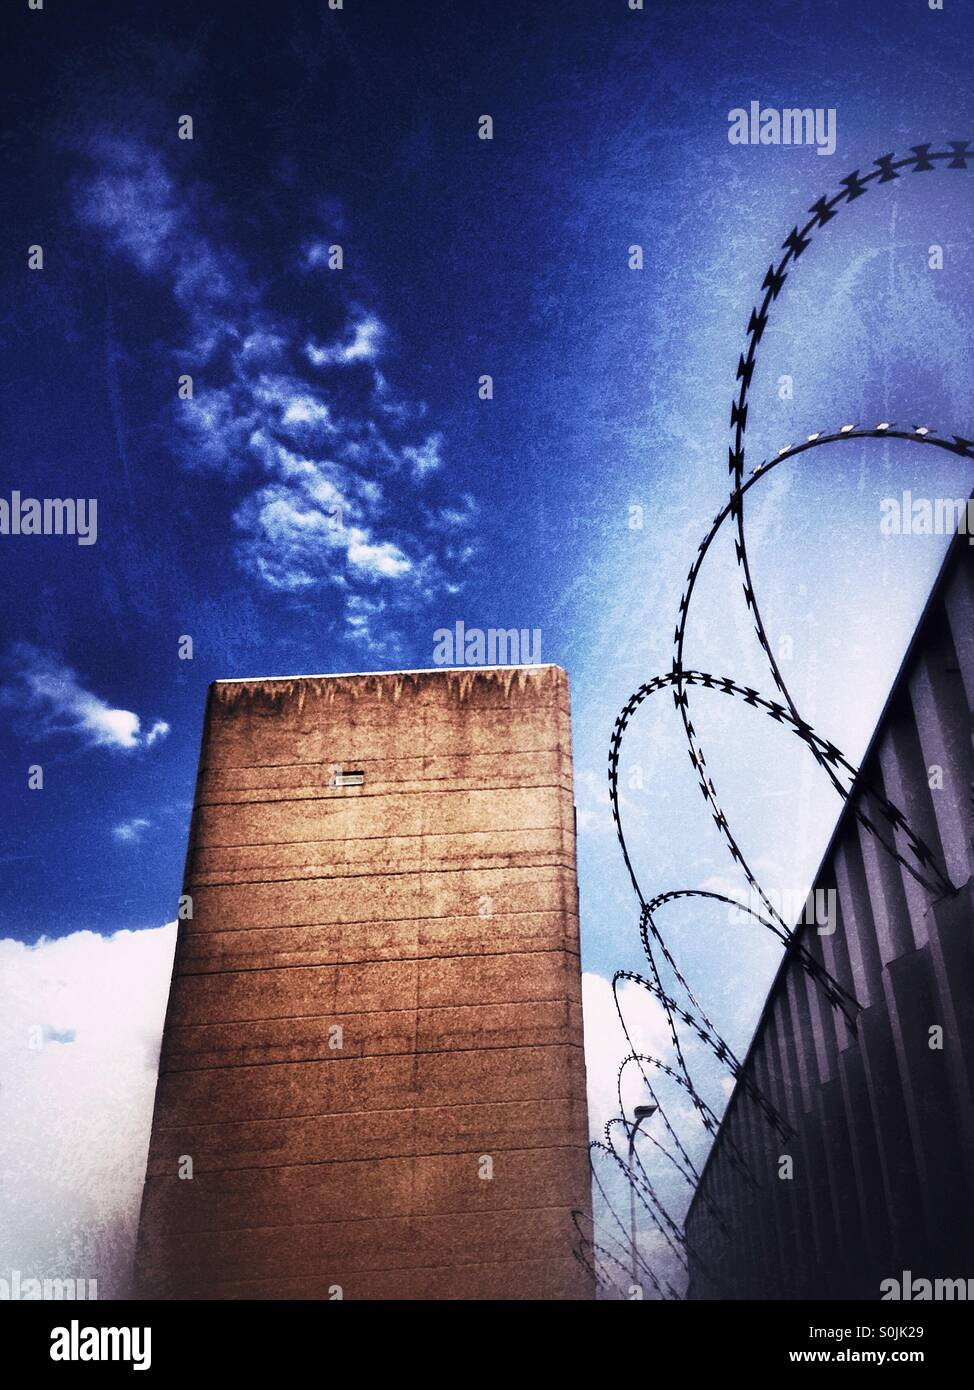 Razor wire fencing and stark building. - Stock Image